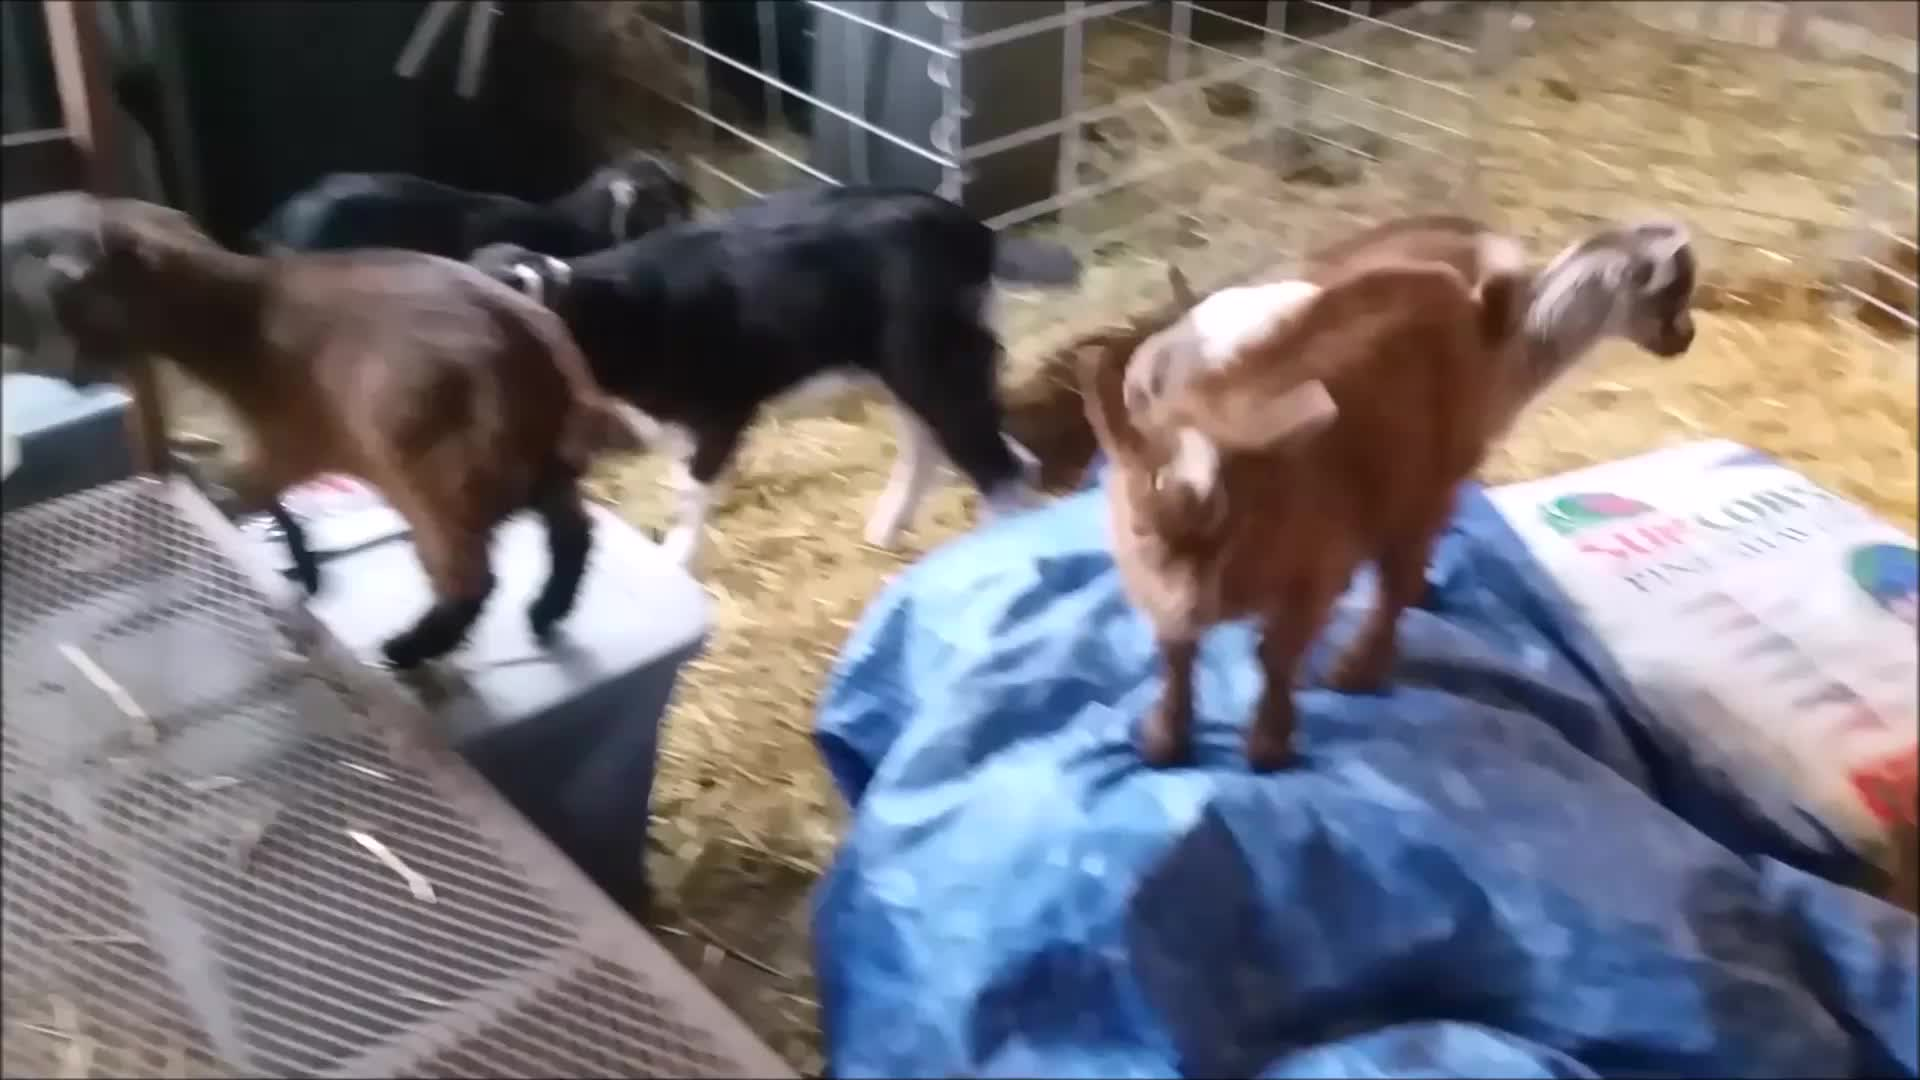 aww, cute, eyebleach, goat, goatparkour, goats, knsfarm, mademesmile, Small Parkour 1 GIFs